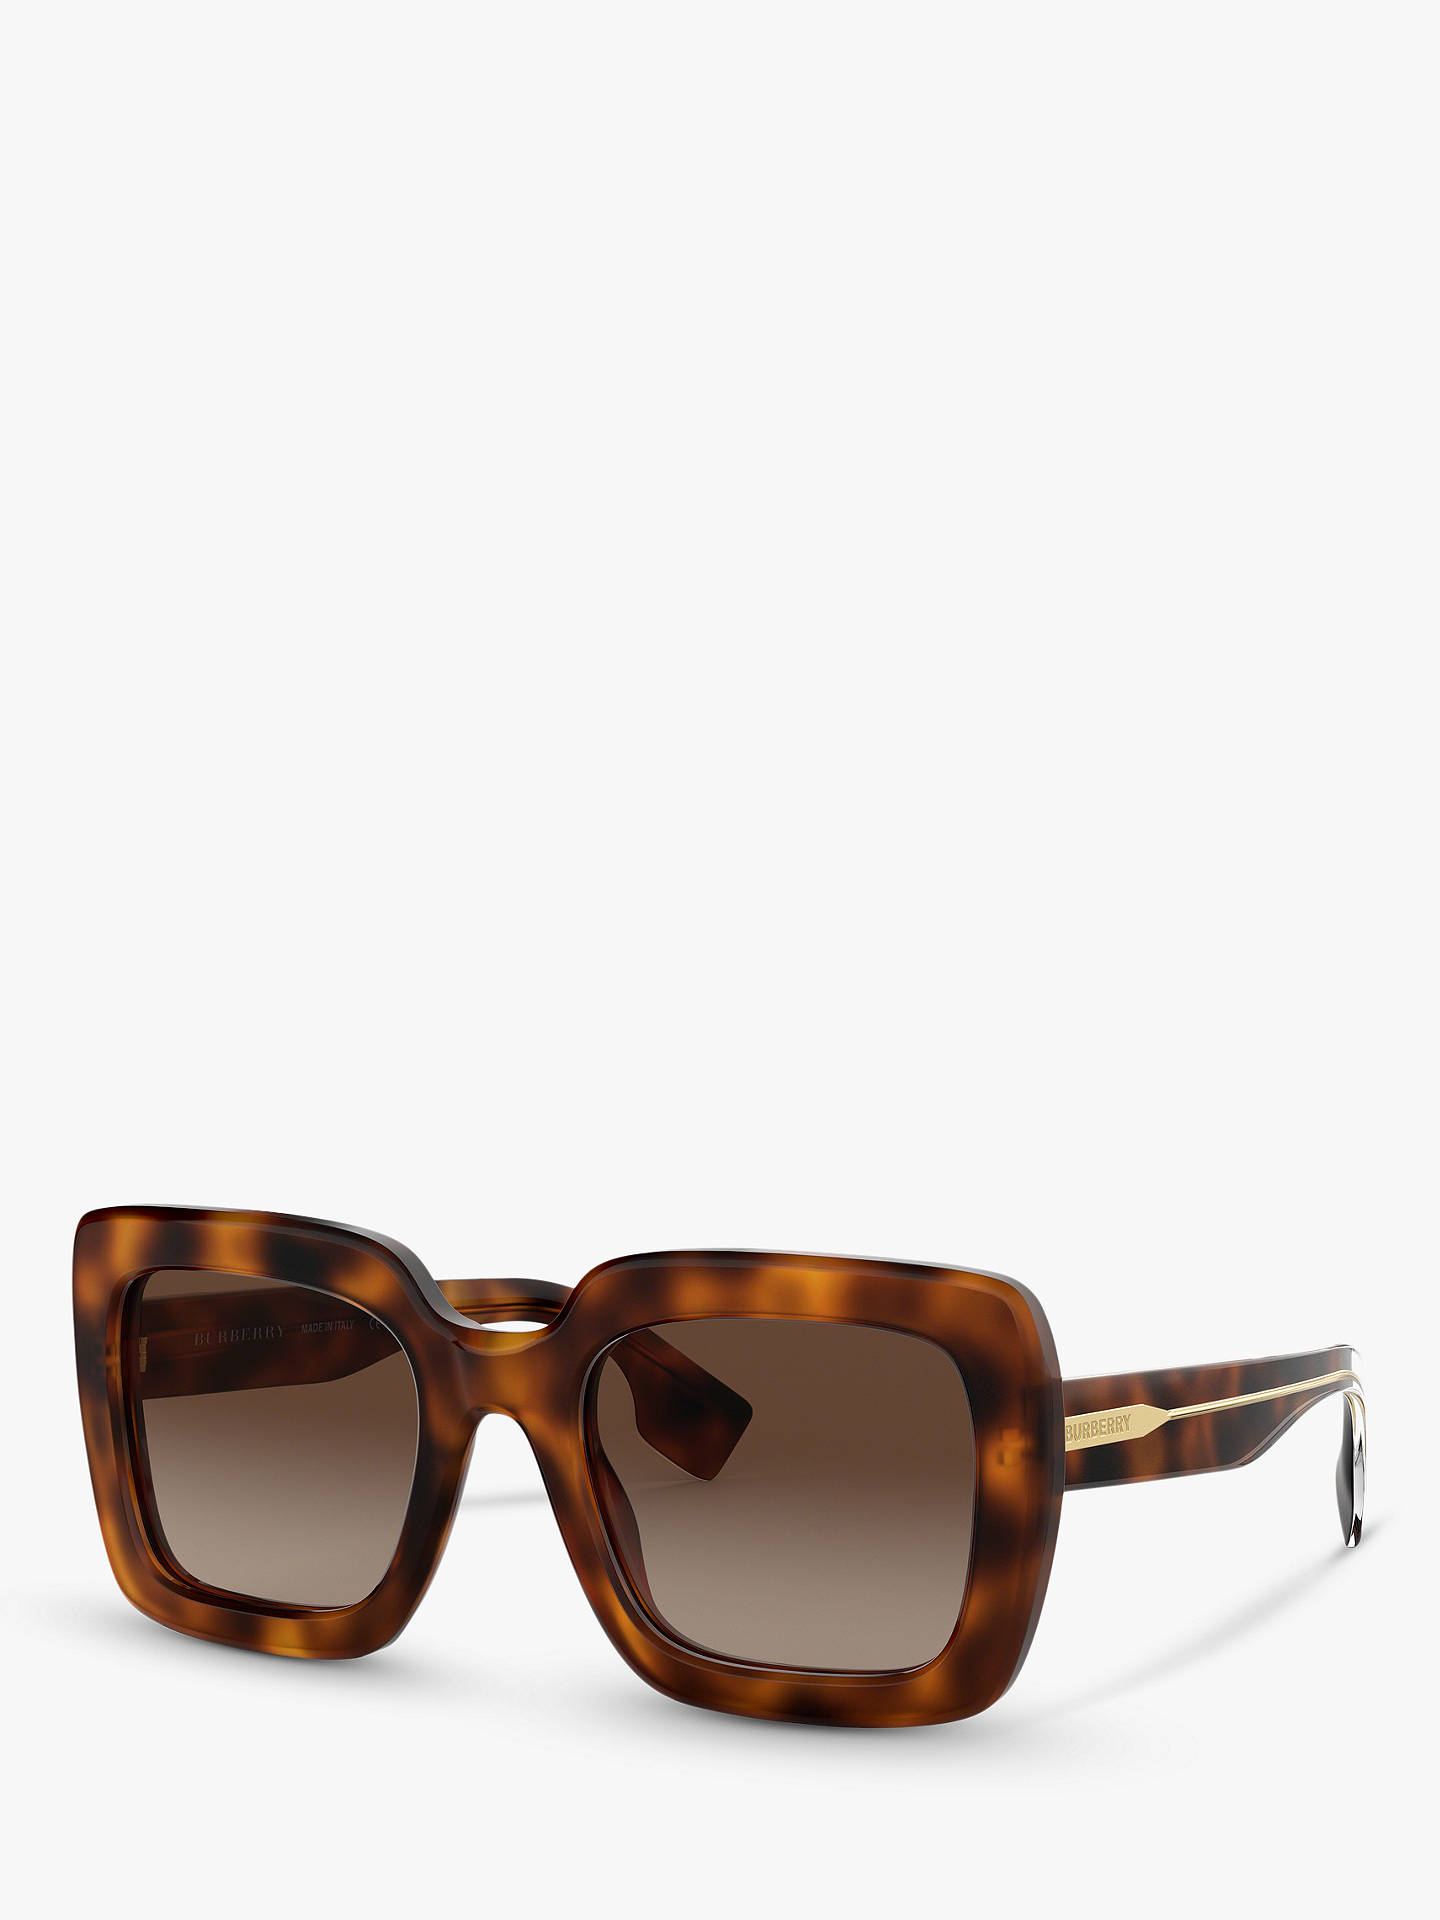 a3dcd852efe Buy Burberry BE4284 Women s Chunky Square Sunglasses